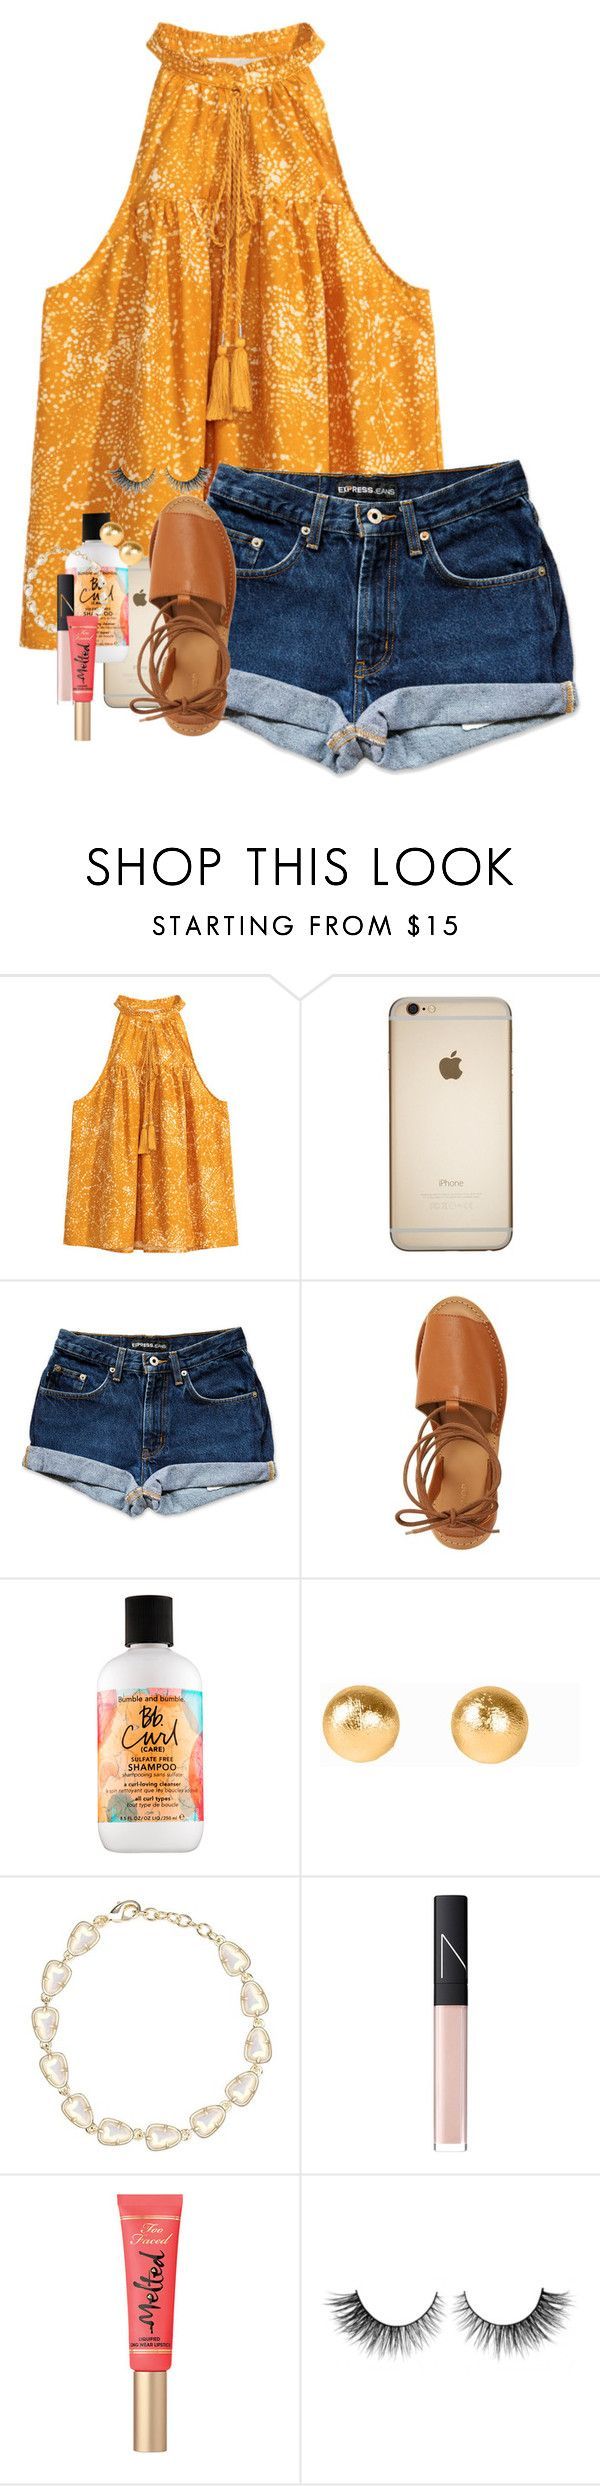 """Just got back from a firework show on the lake!❤️There were so many spiders on the boat though"" by erinlmarkel ❤ liked on Polyvore featuring H&M, Topshop, Bumble and bumble, Snö Of Sweden, Kendra Scott, NARS Cosmetics, Too Faced Cosmetics and Rimini"